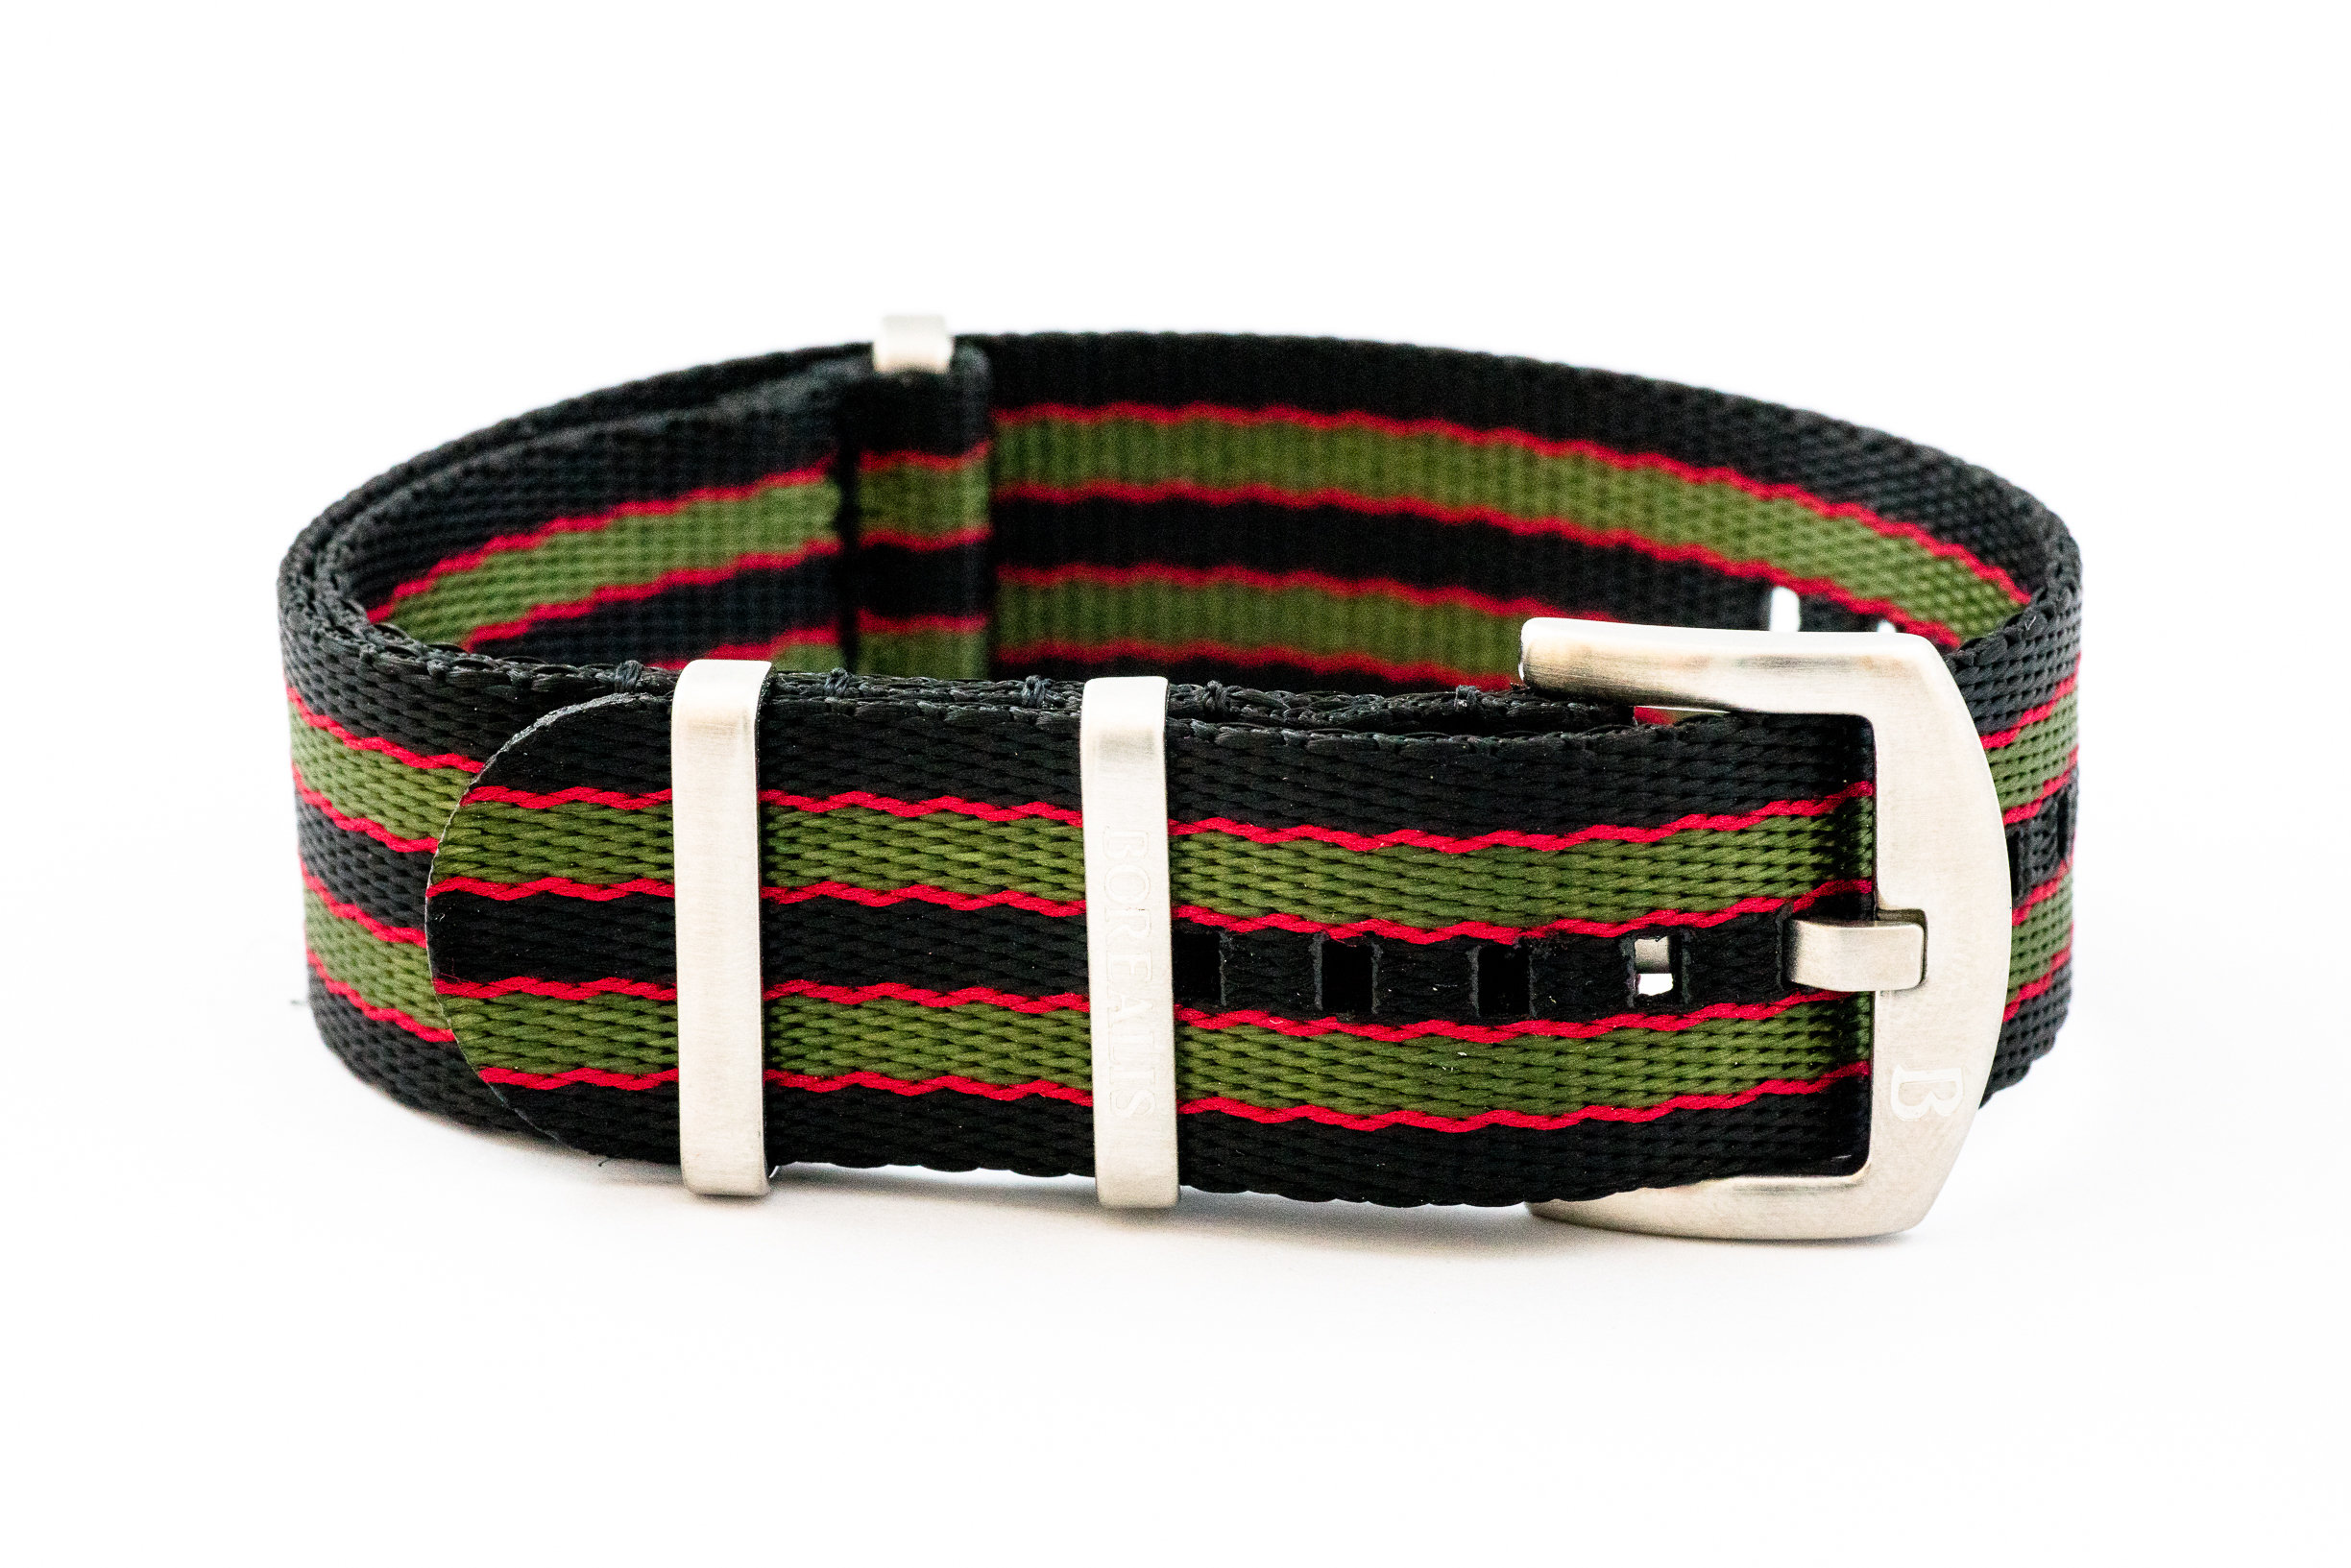 Premium Nato style seatbelt nylon strap 22mm size three tone black red green BSBNSBREDGREEN22MM